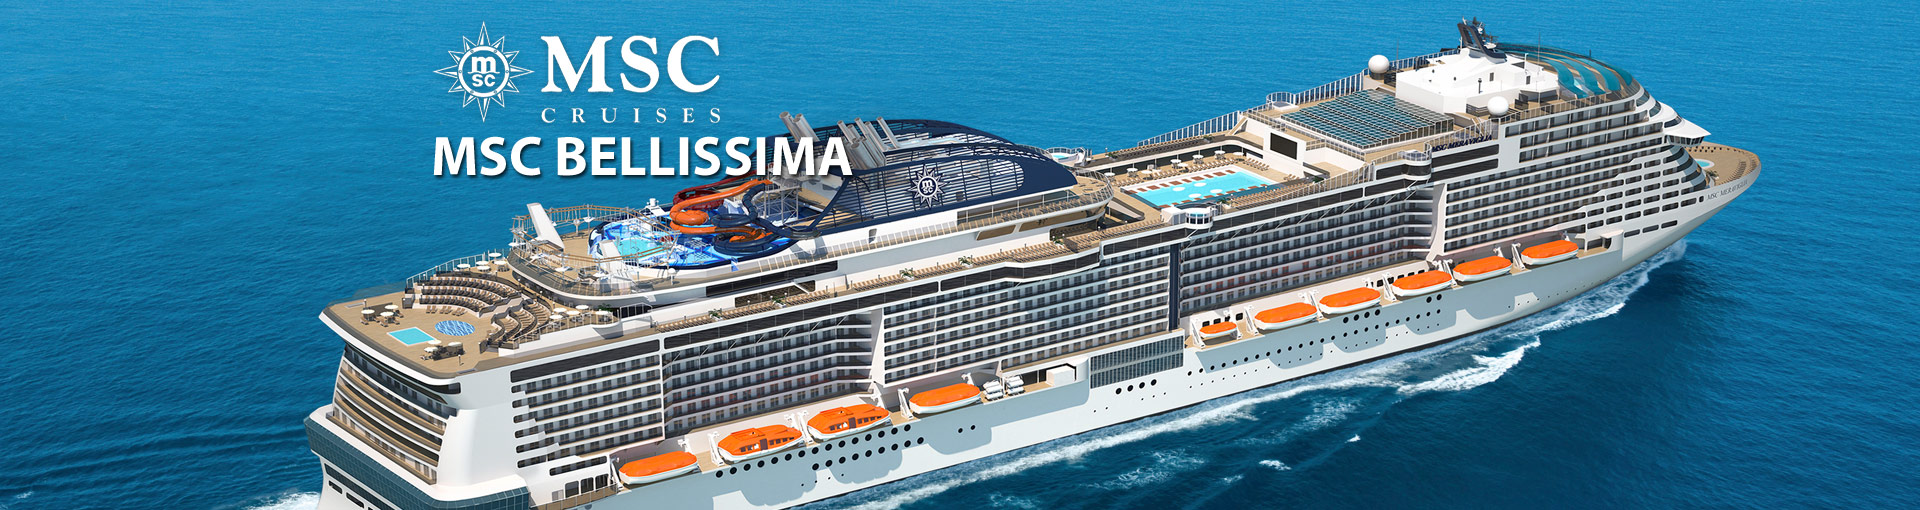 MSC Cruises MSC Bellissima Cruise Ship